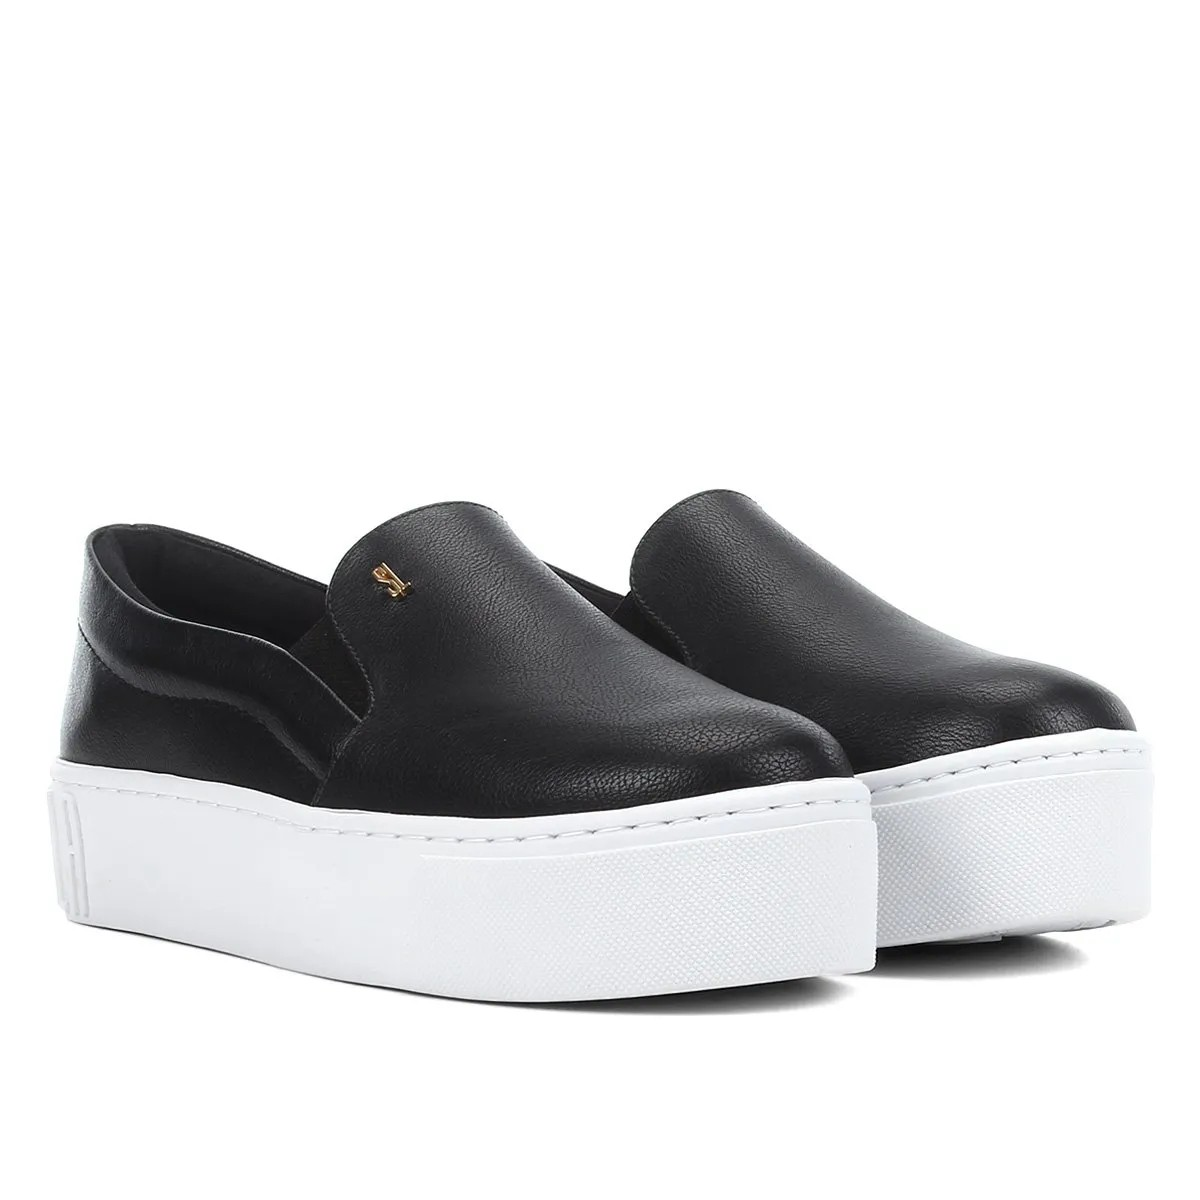 Slip On by Santa Lolla Preto Sola Alta